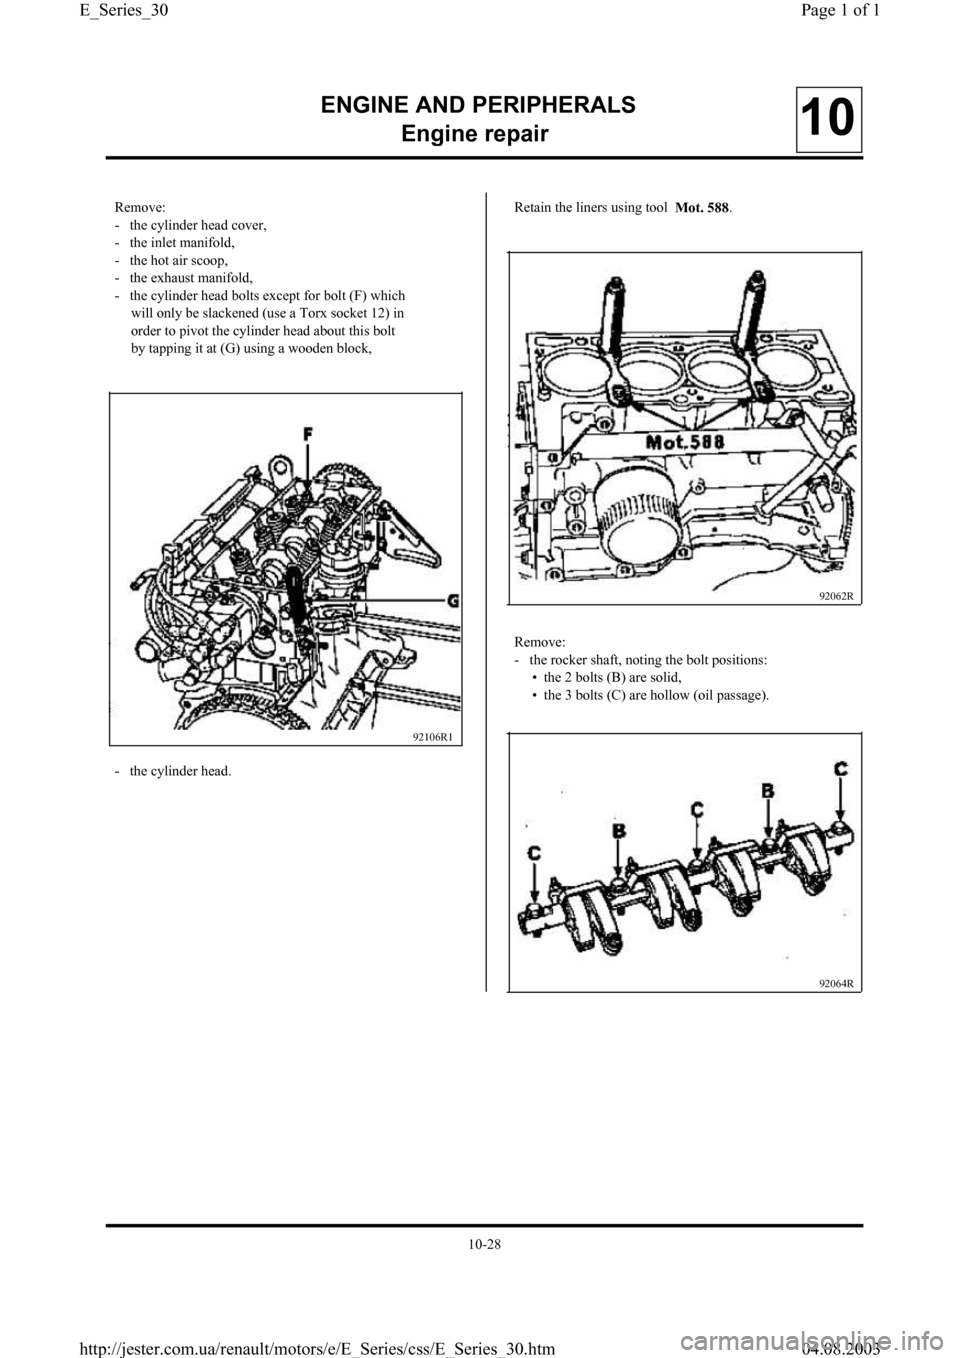 RENAULT CLIO 1997 X57 / 1.G Petrol Engines Workshop Manual, Page 30